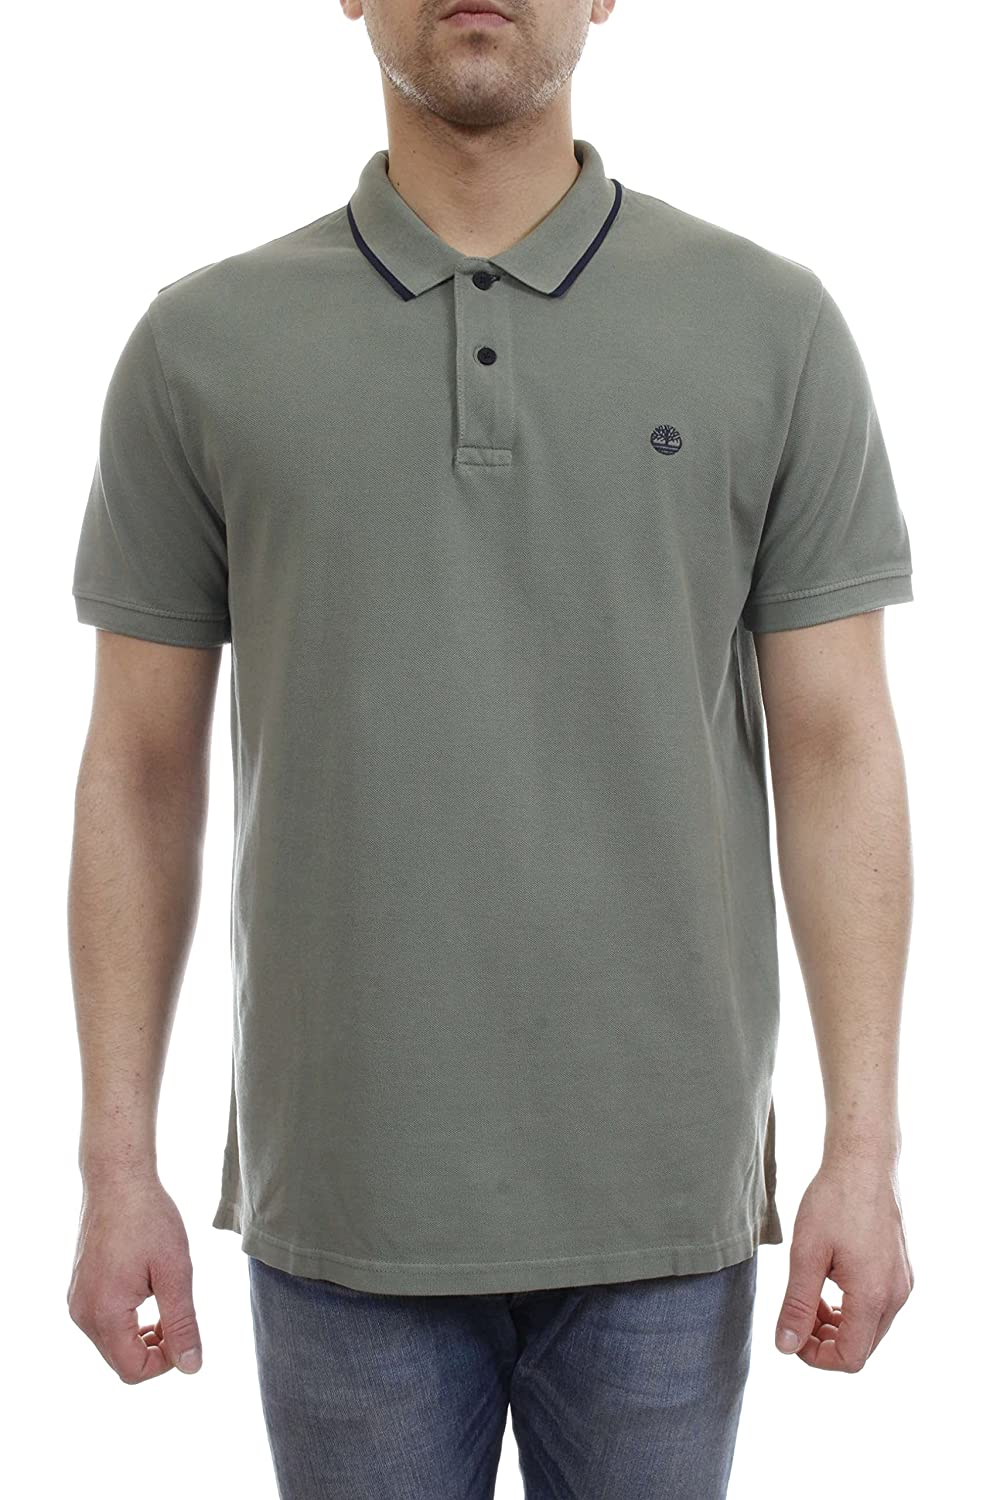 Timberland SS GD Pque Polo Slim Duck Green: Amazon.es: Ropa y ...